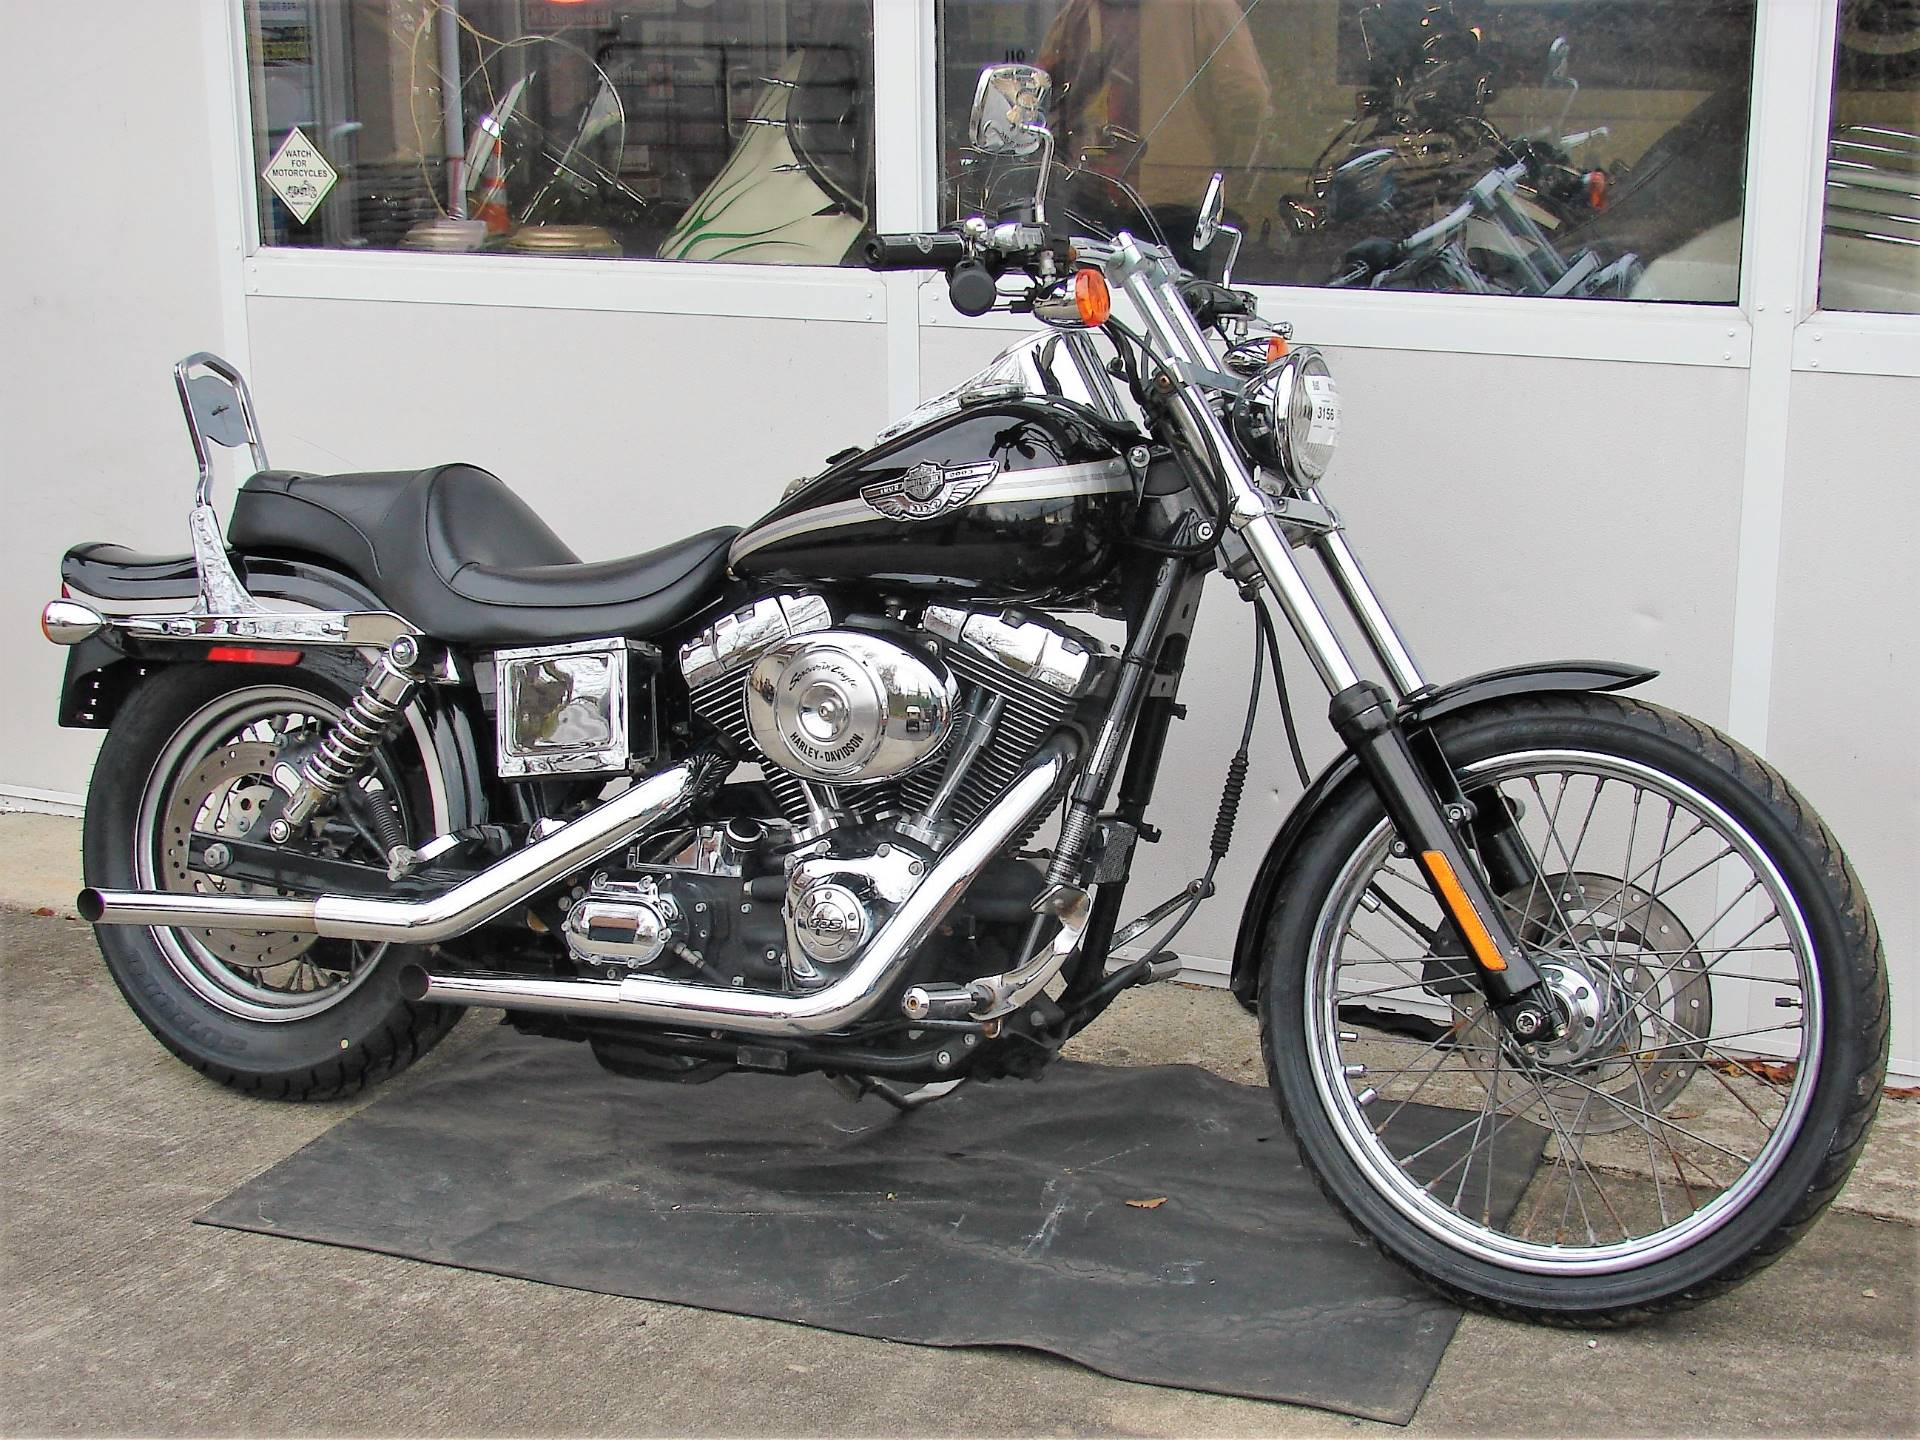 2003 Harley-Davidson Dyna Wide Glide in Williamstown, New Jersey - Photo 4